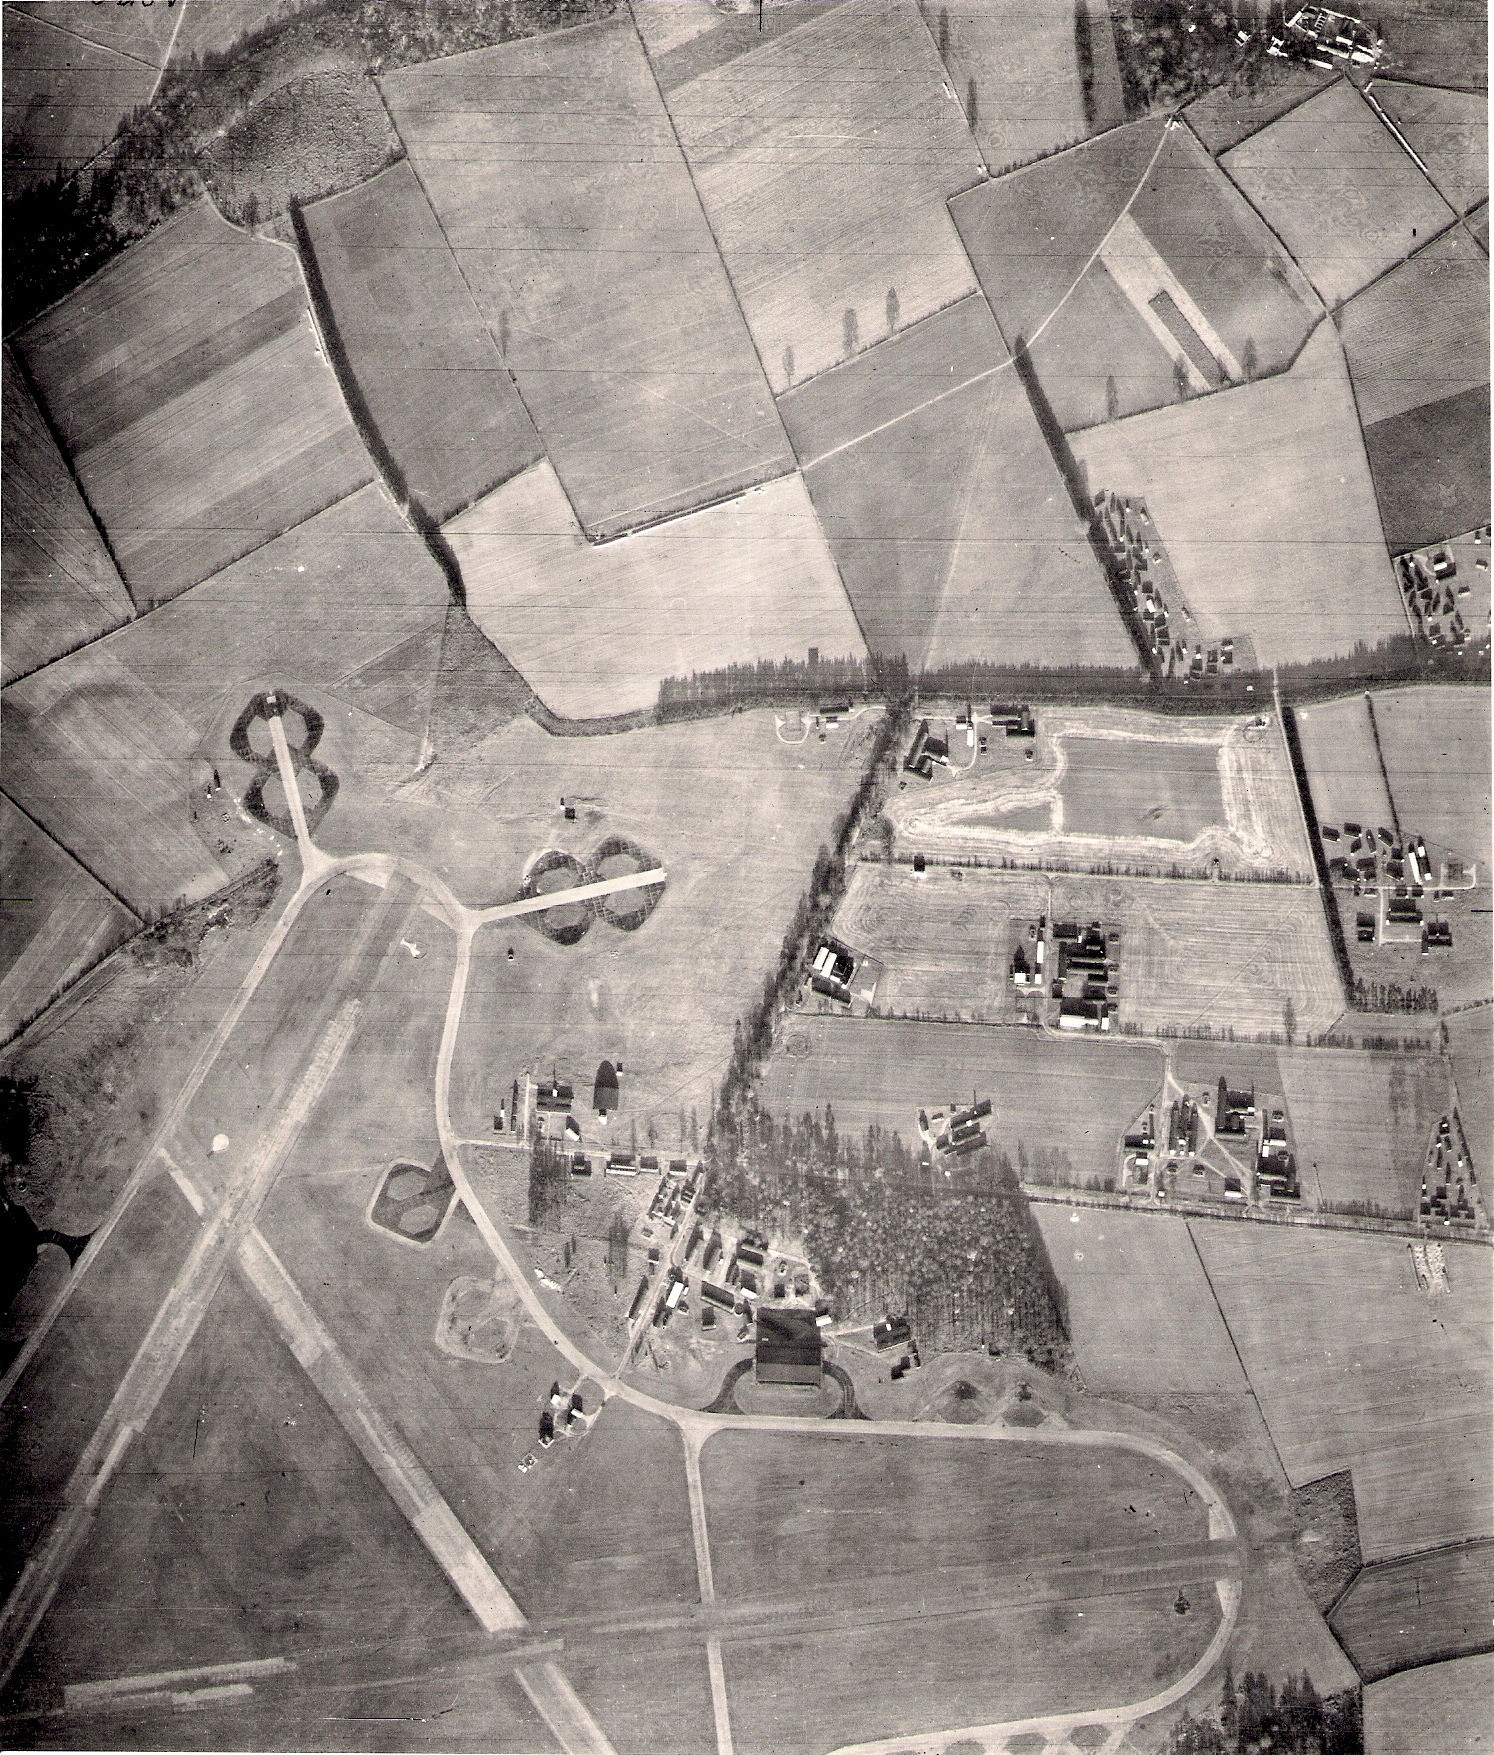 RAF Worksop, RAF Scofton, Airfield, 1950